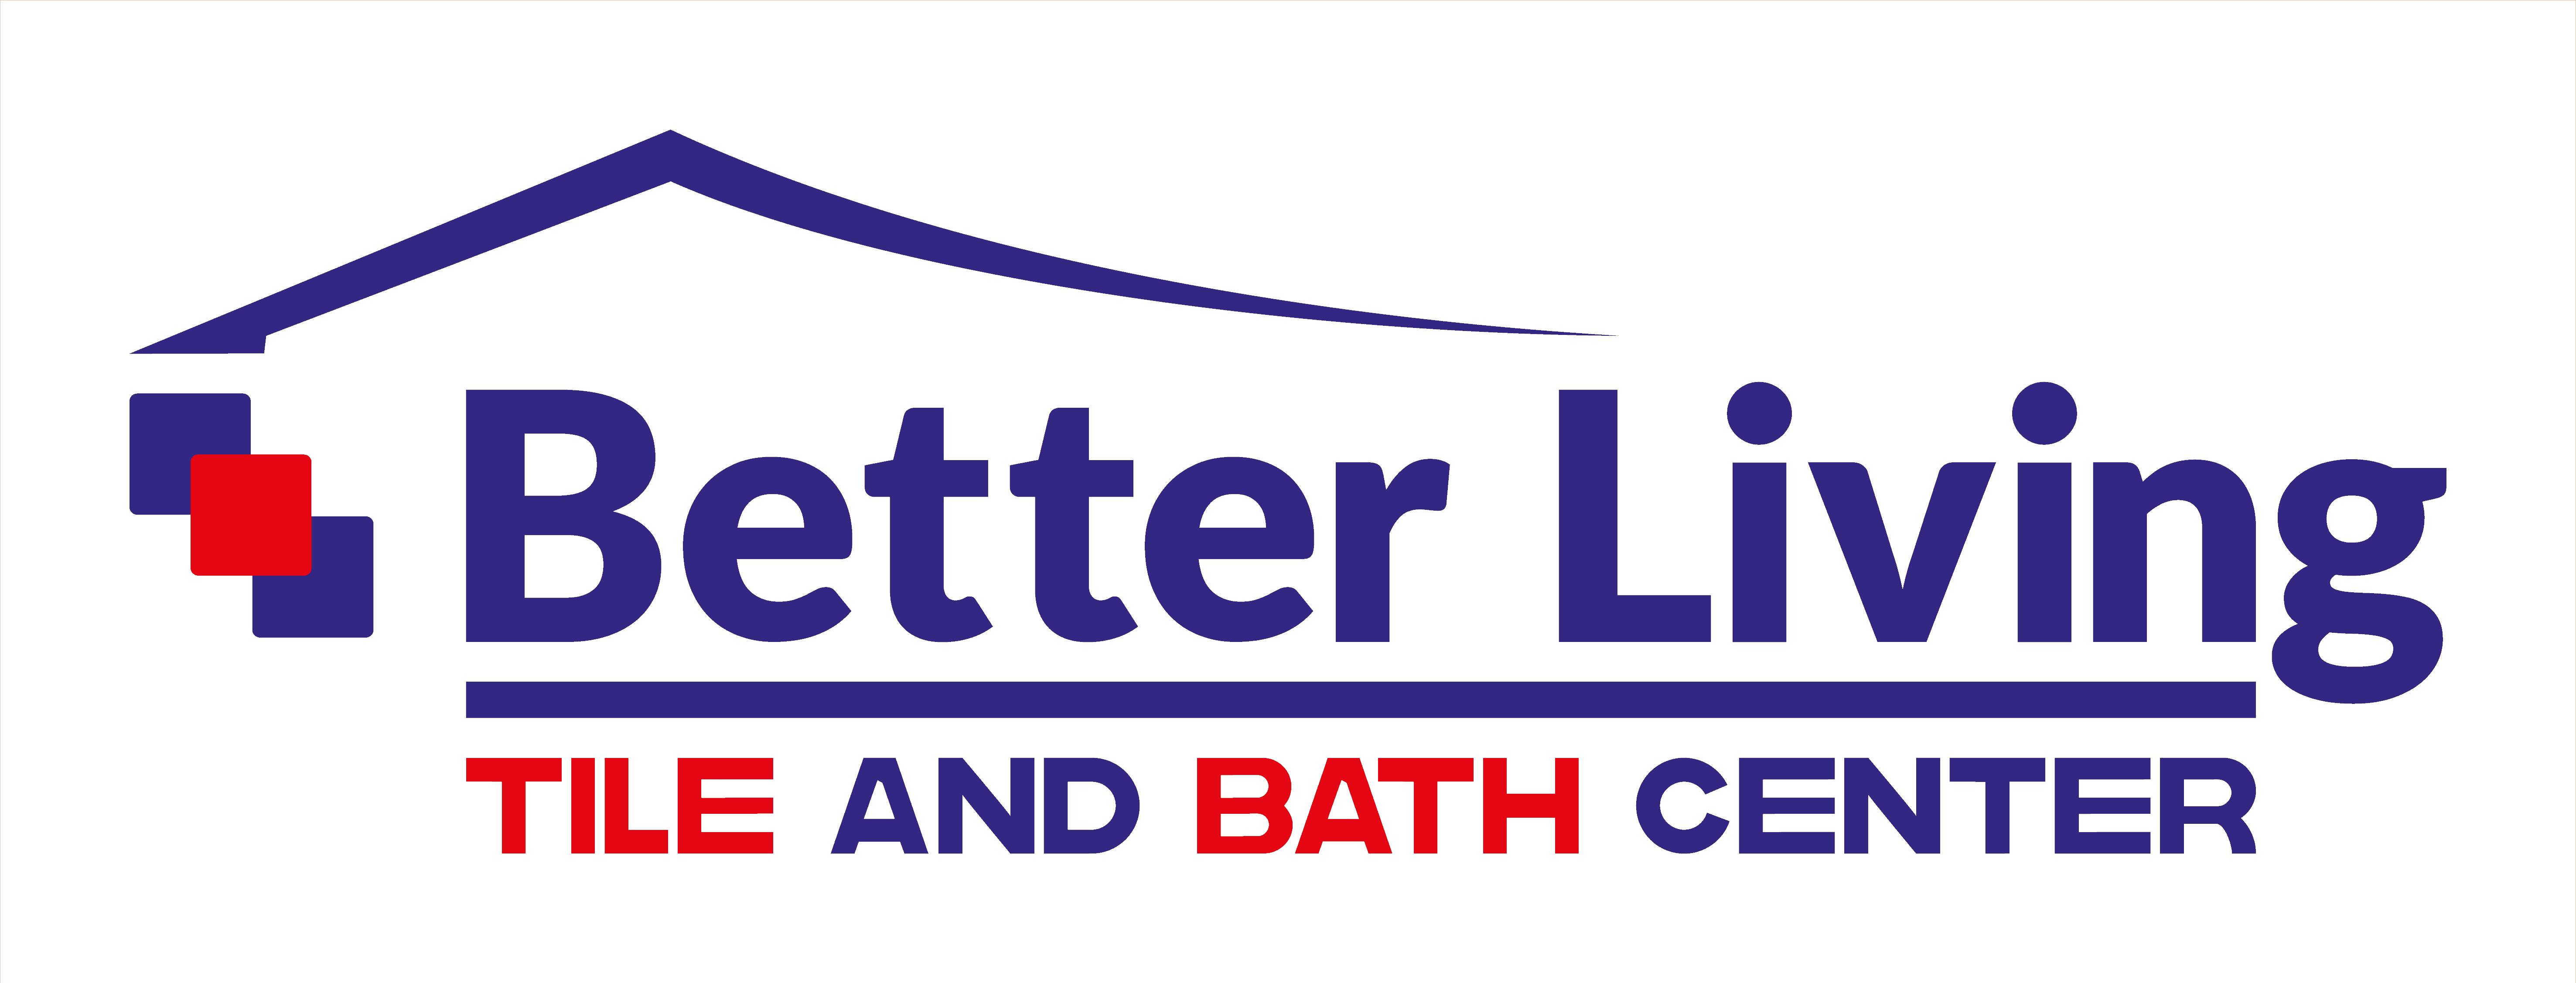 Better Living Tile and Bath Center